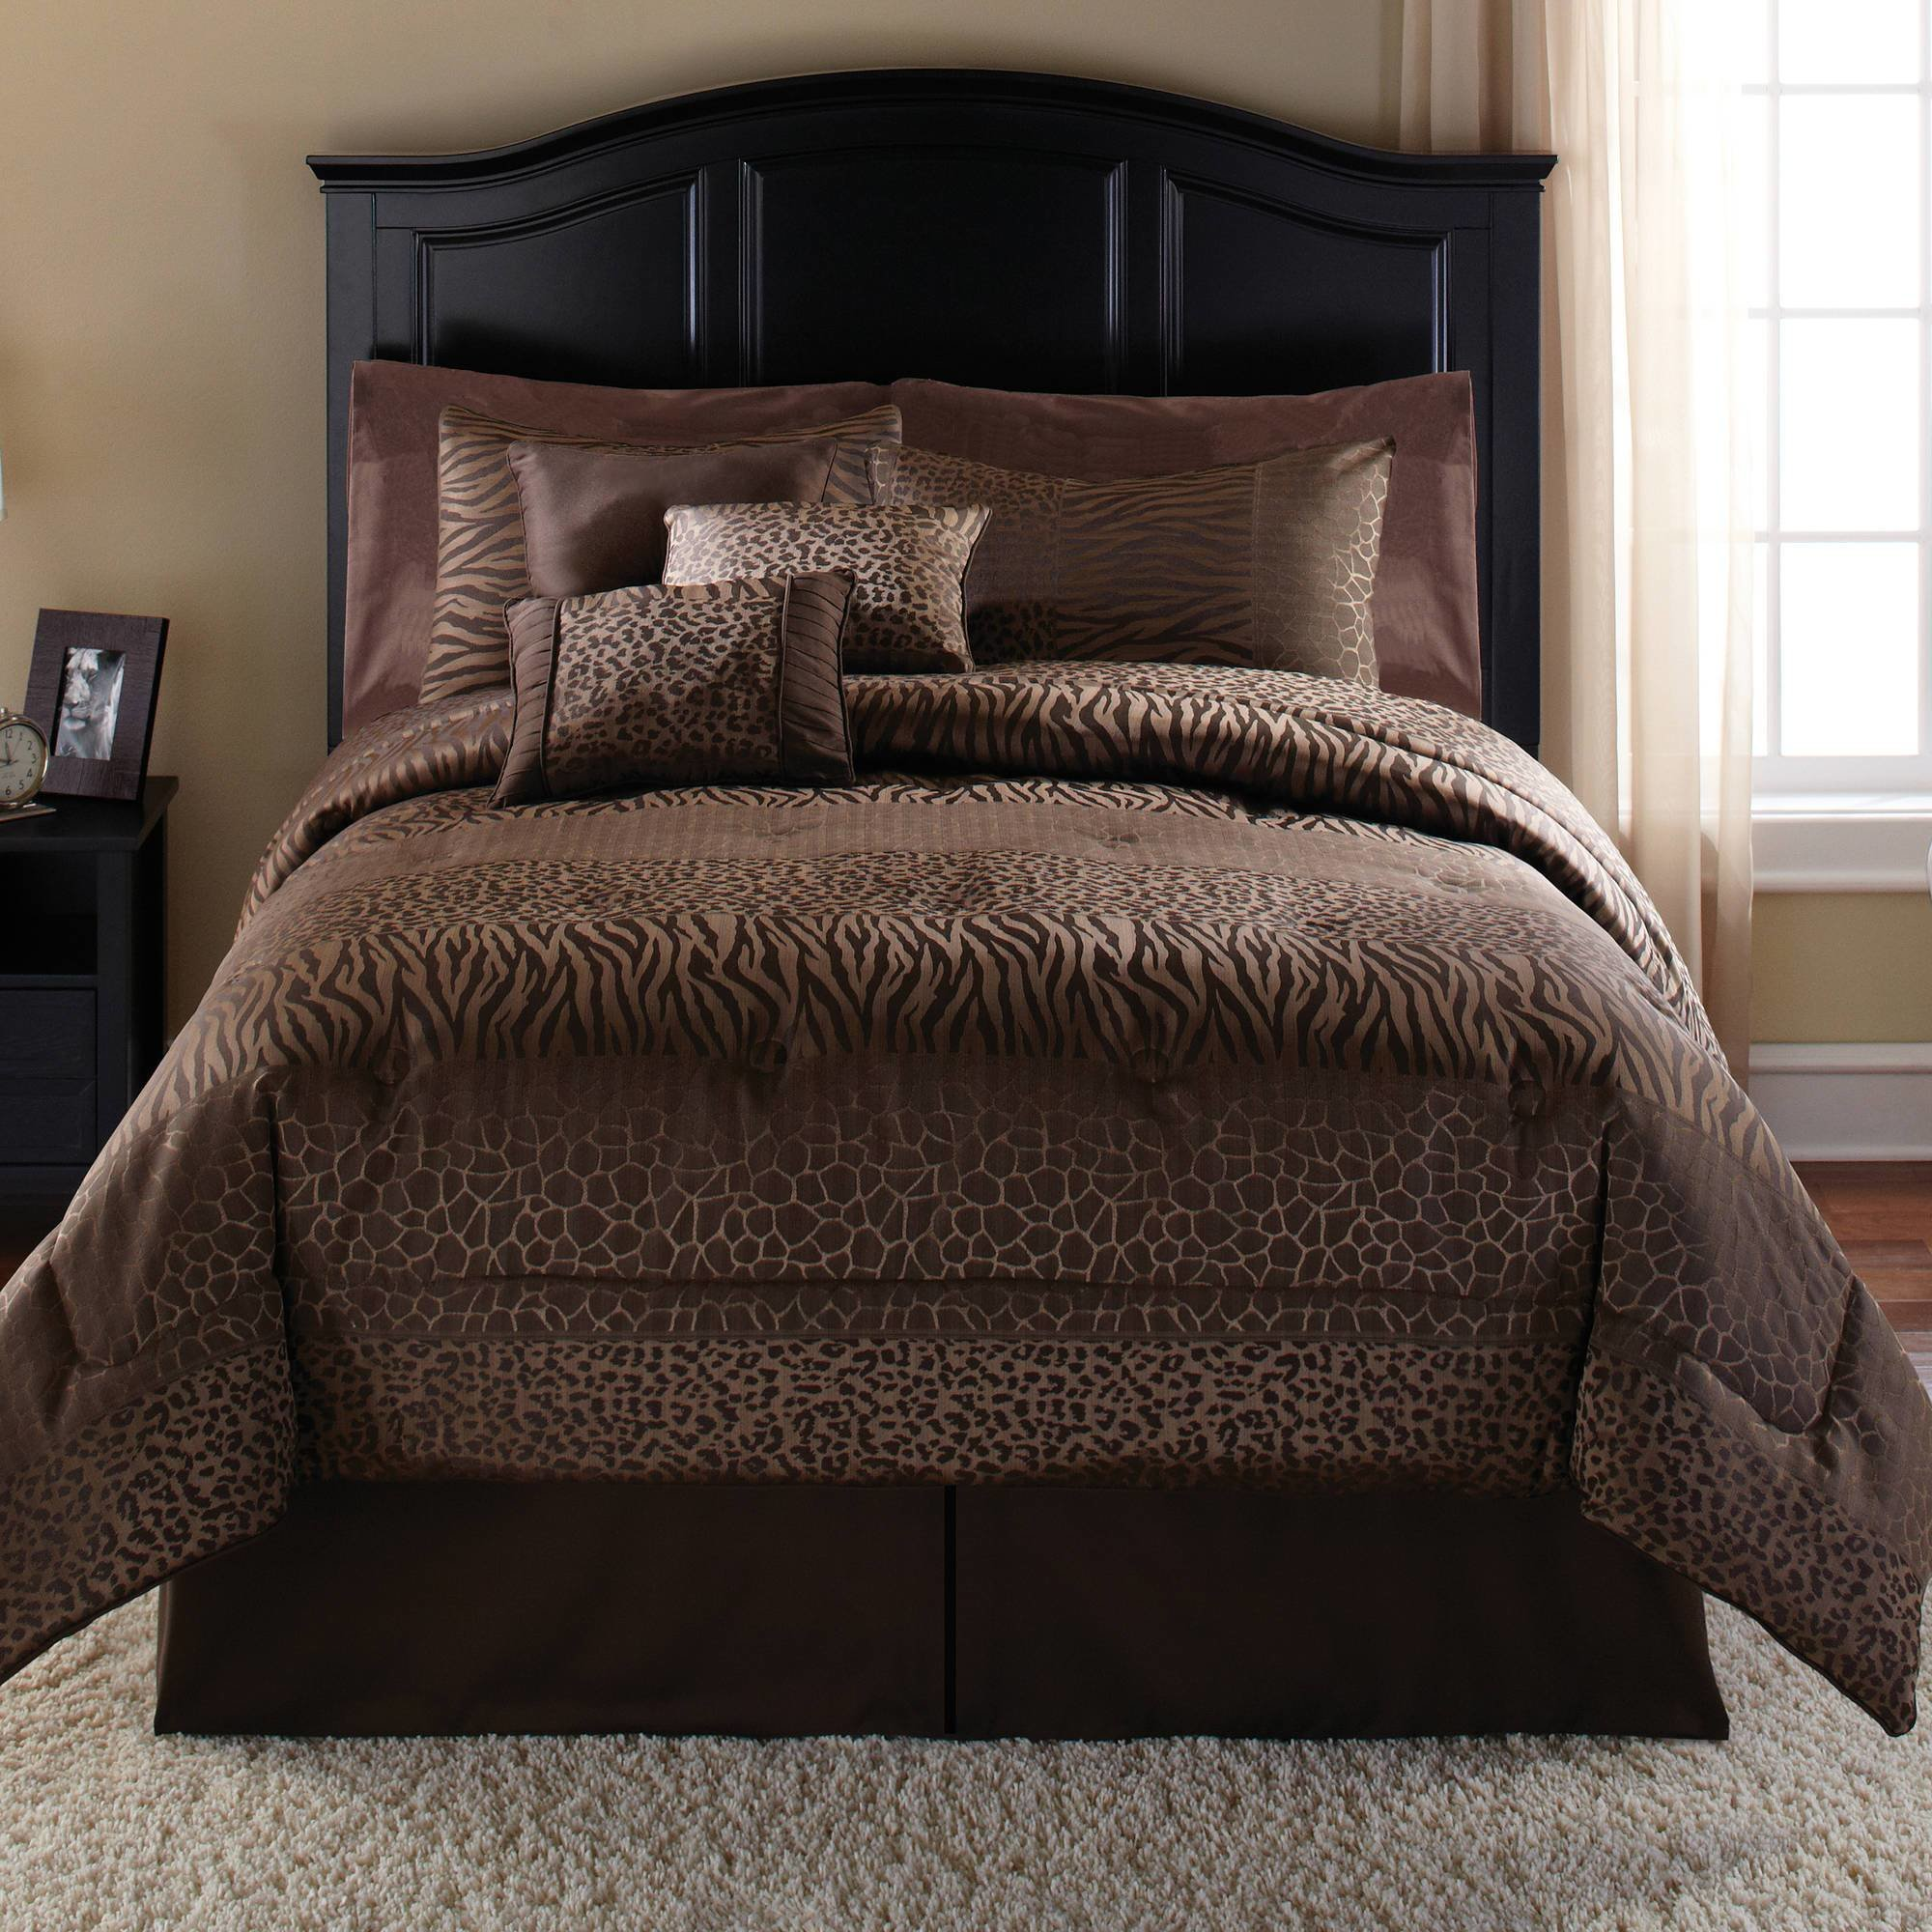 Best Bedding Set King Size Bed In A Bag 7 Piece Collection Hotel Home Sheet Brown New 696565586785 Ebay With Pictures